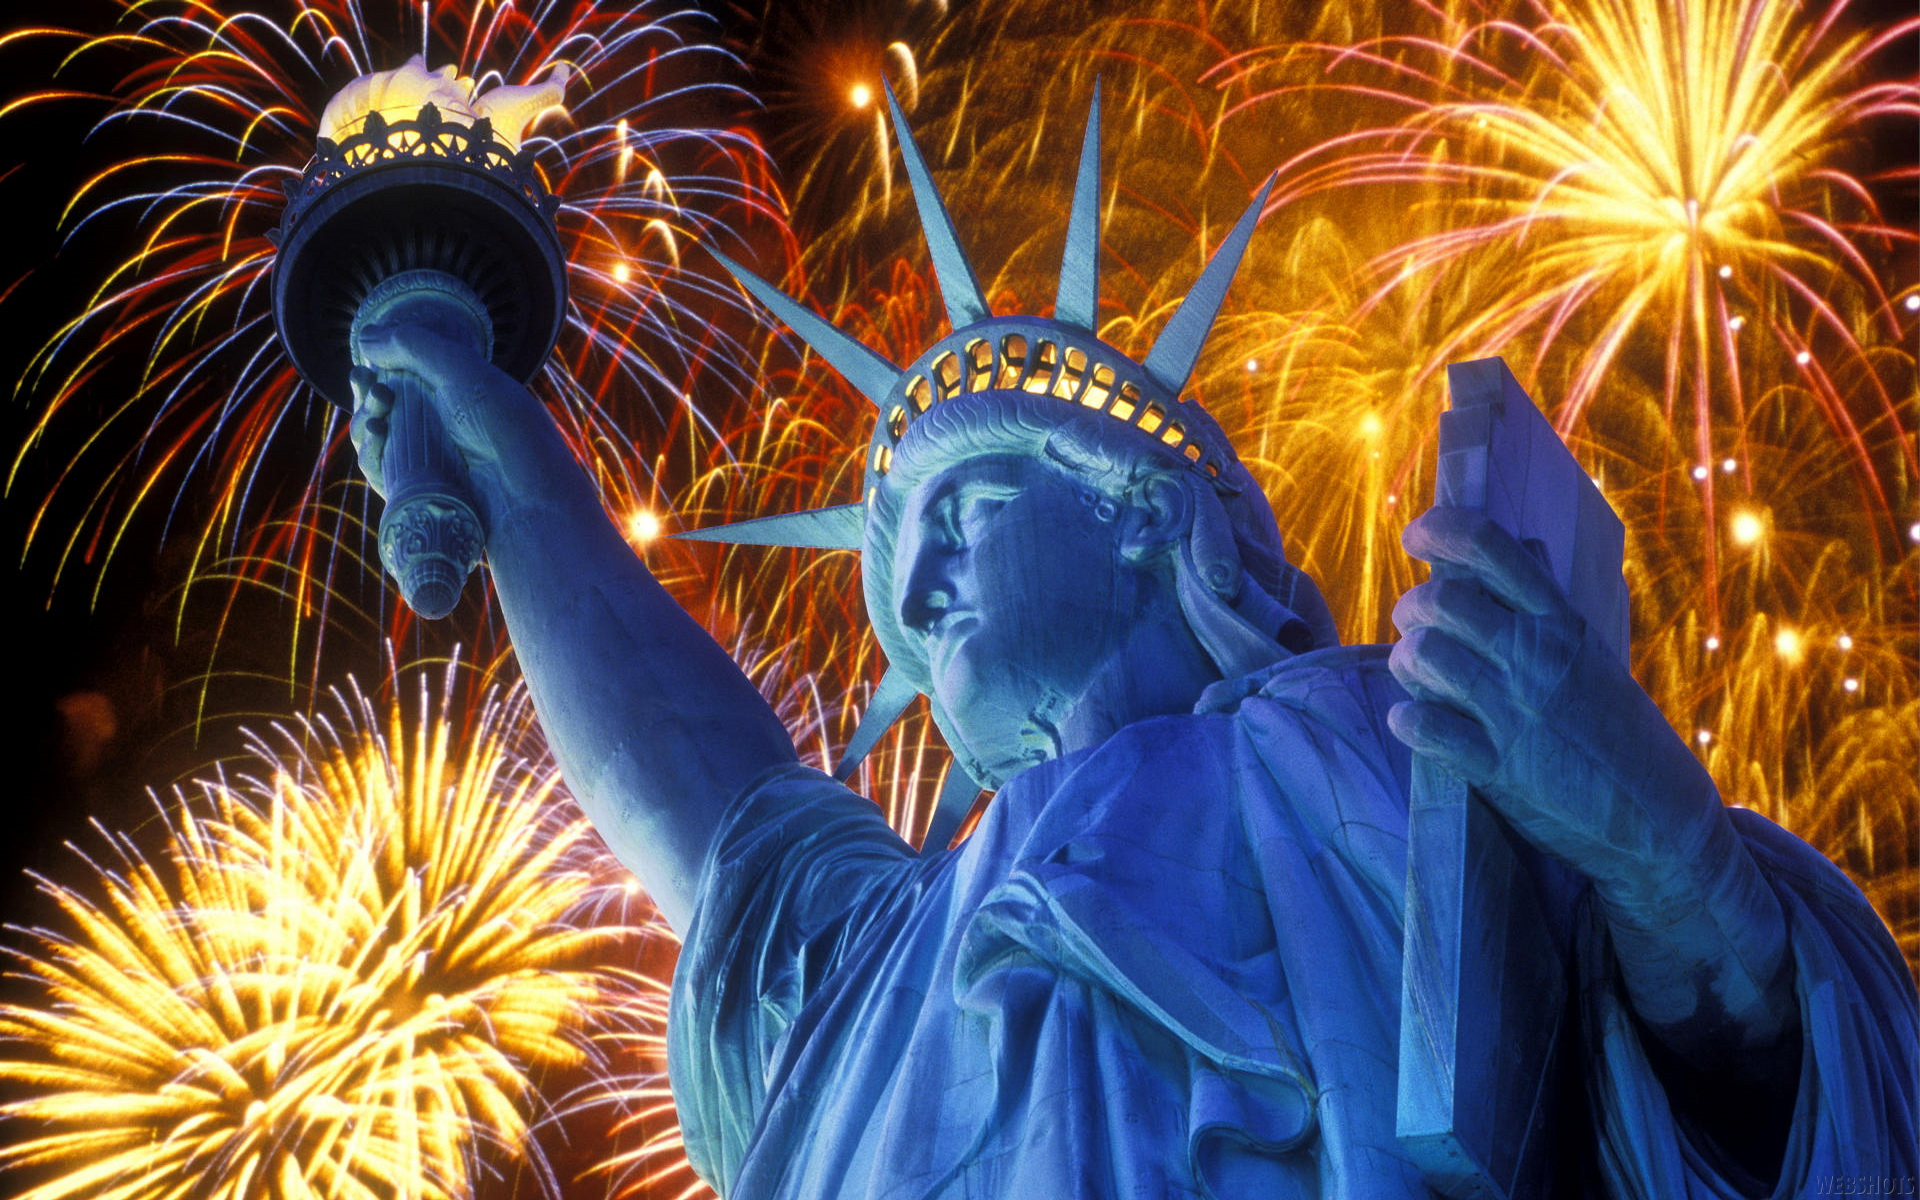 statue_of_liberty_july_fireworks_1920x1200jpg